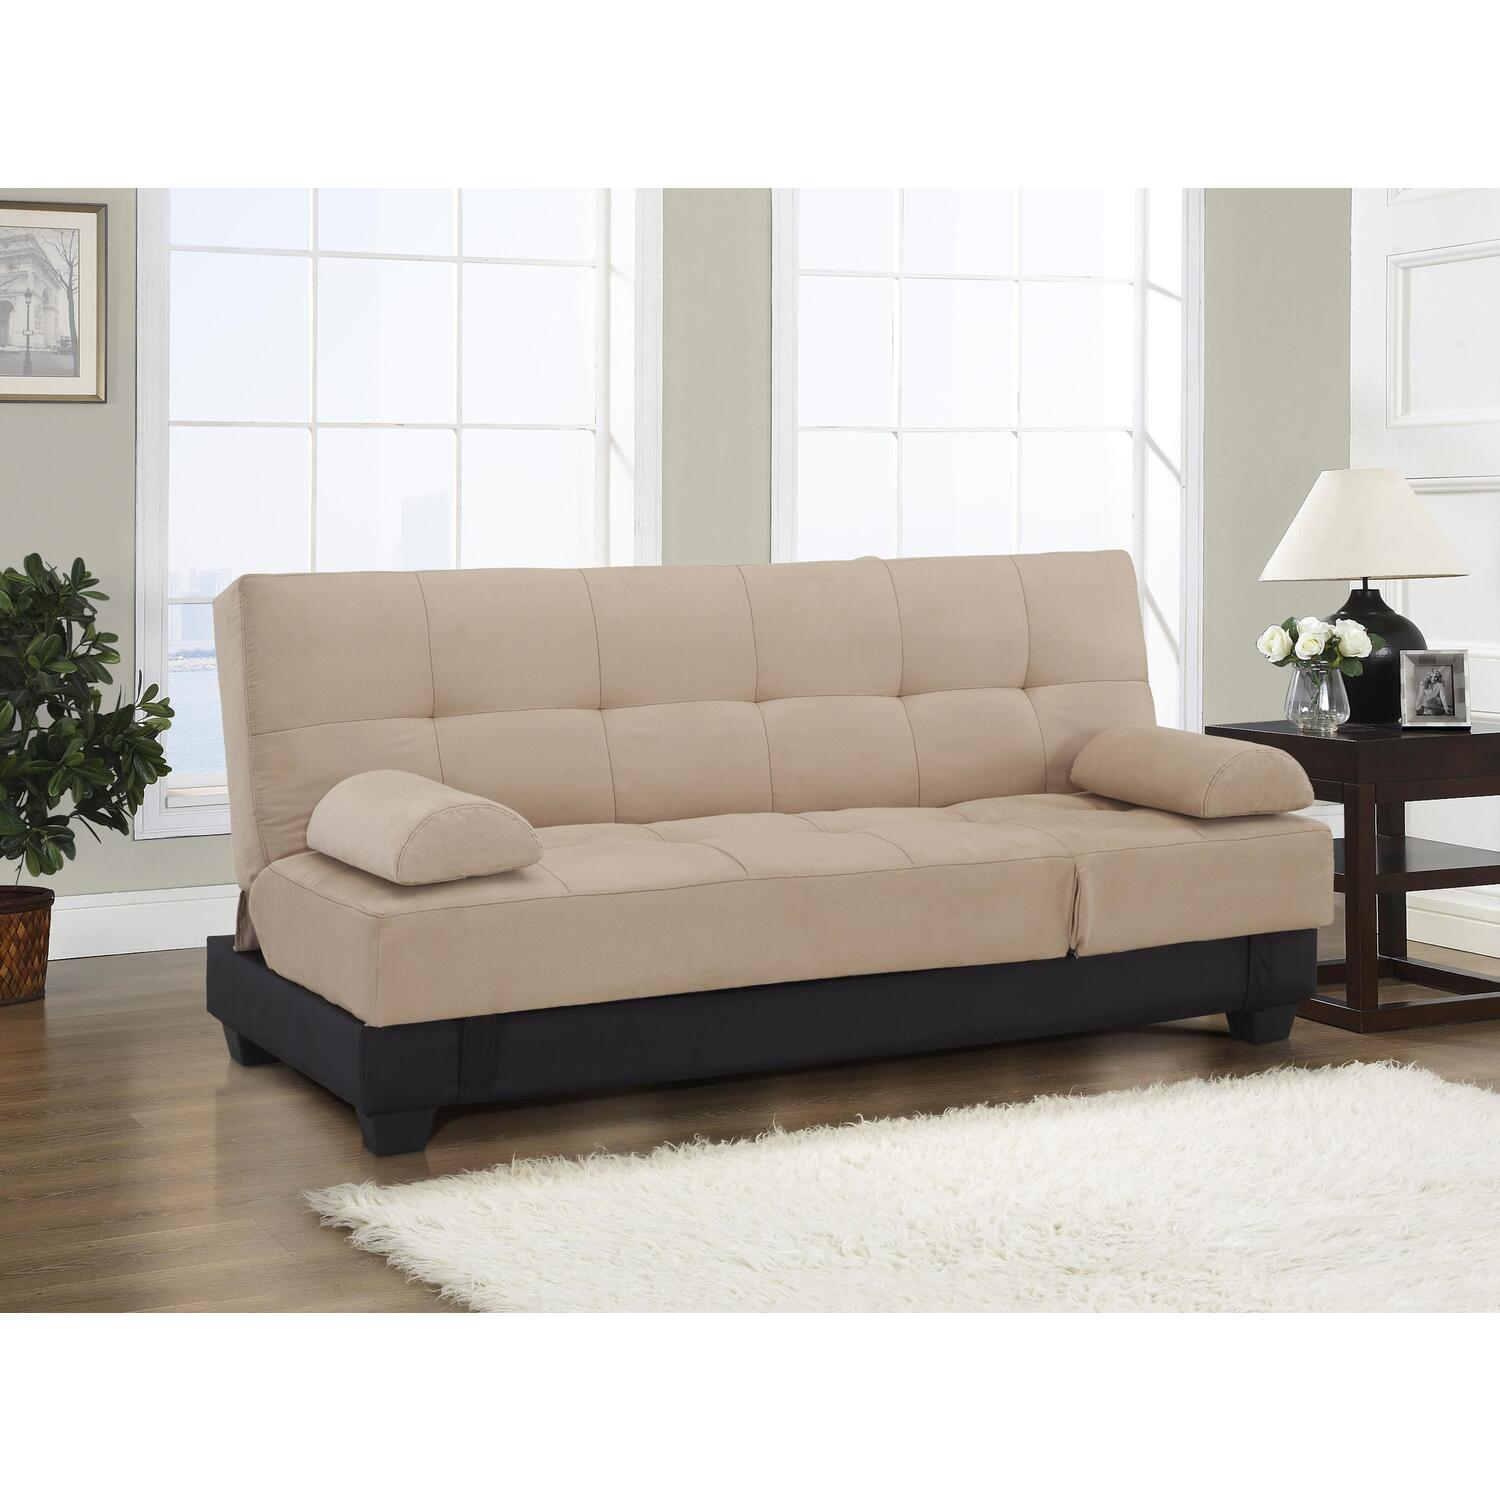 average weight of a large sofa mid century reviews serta harvard by oj commerce schvds3m2kh 439 96